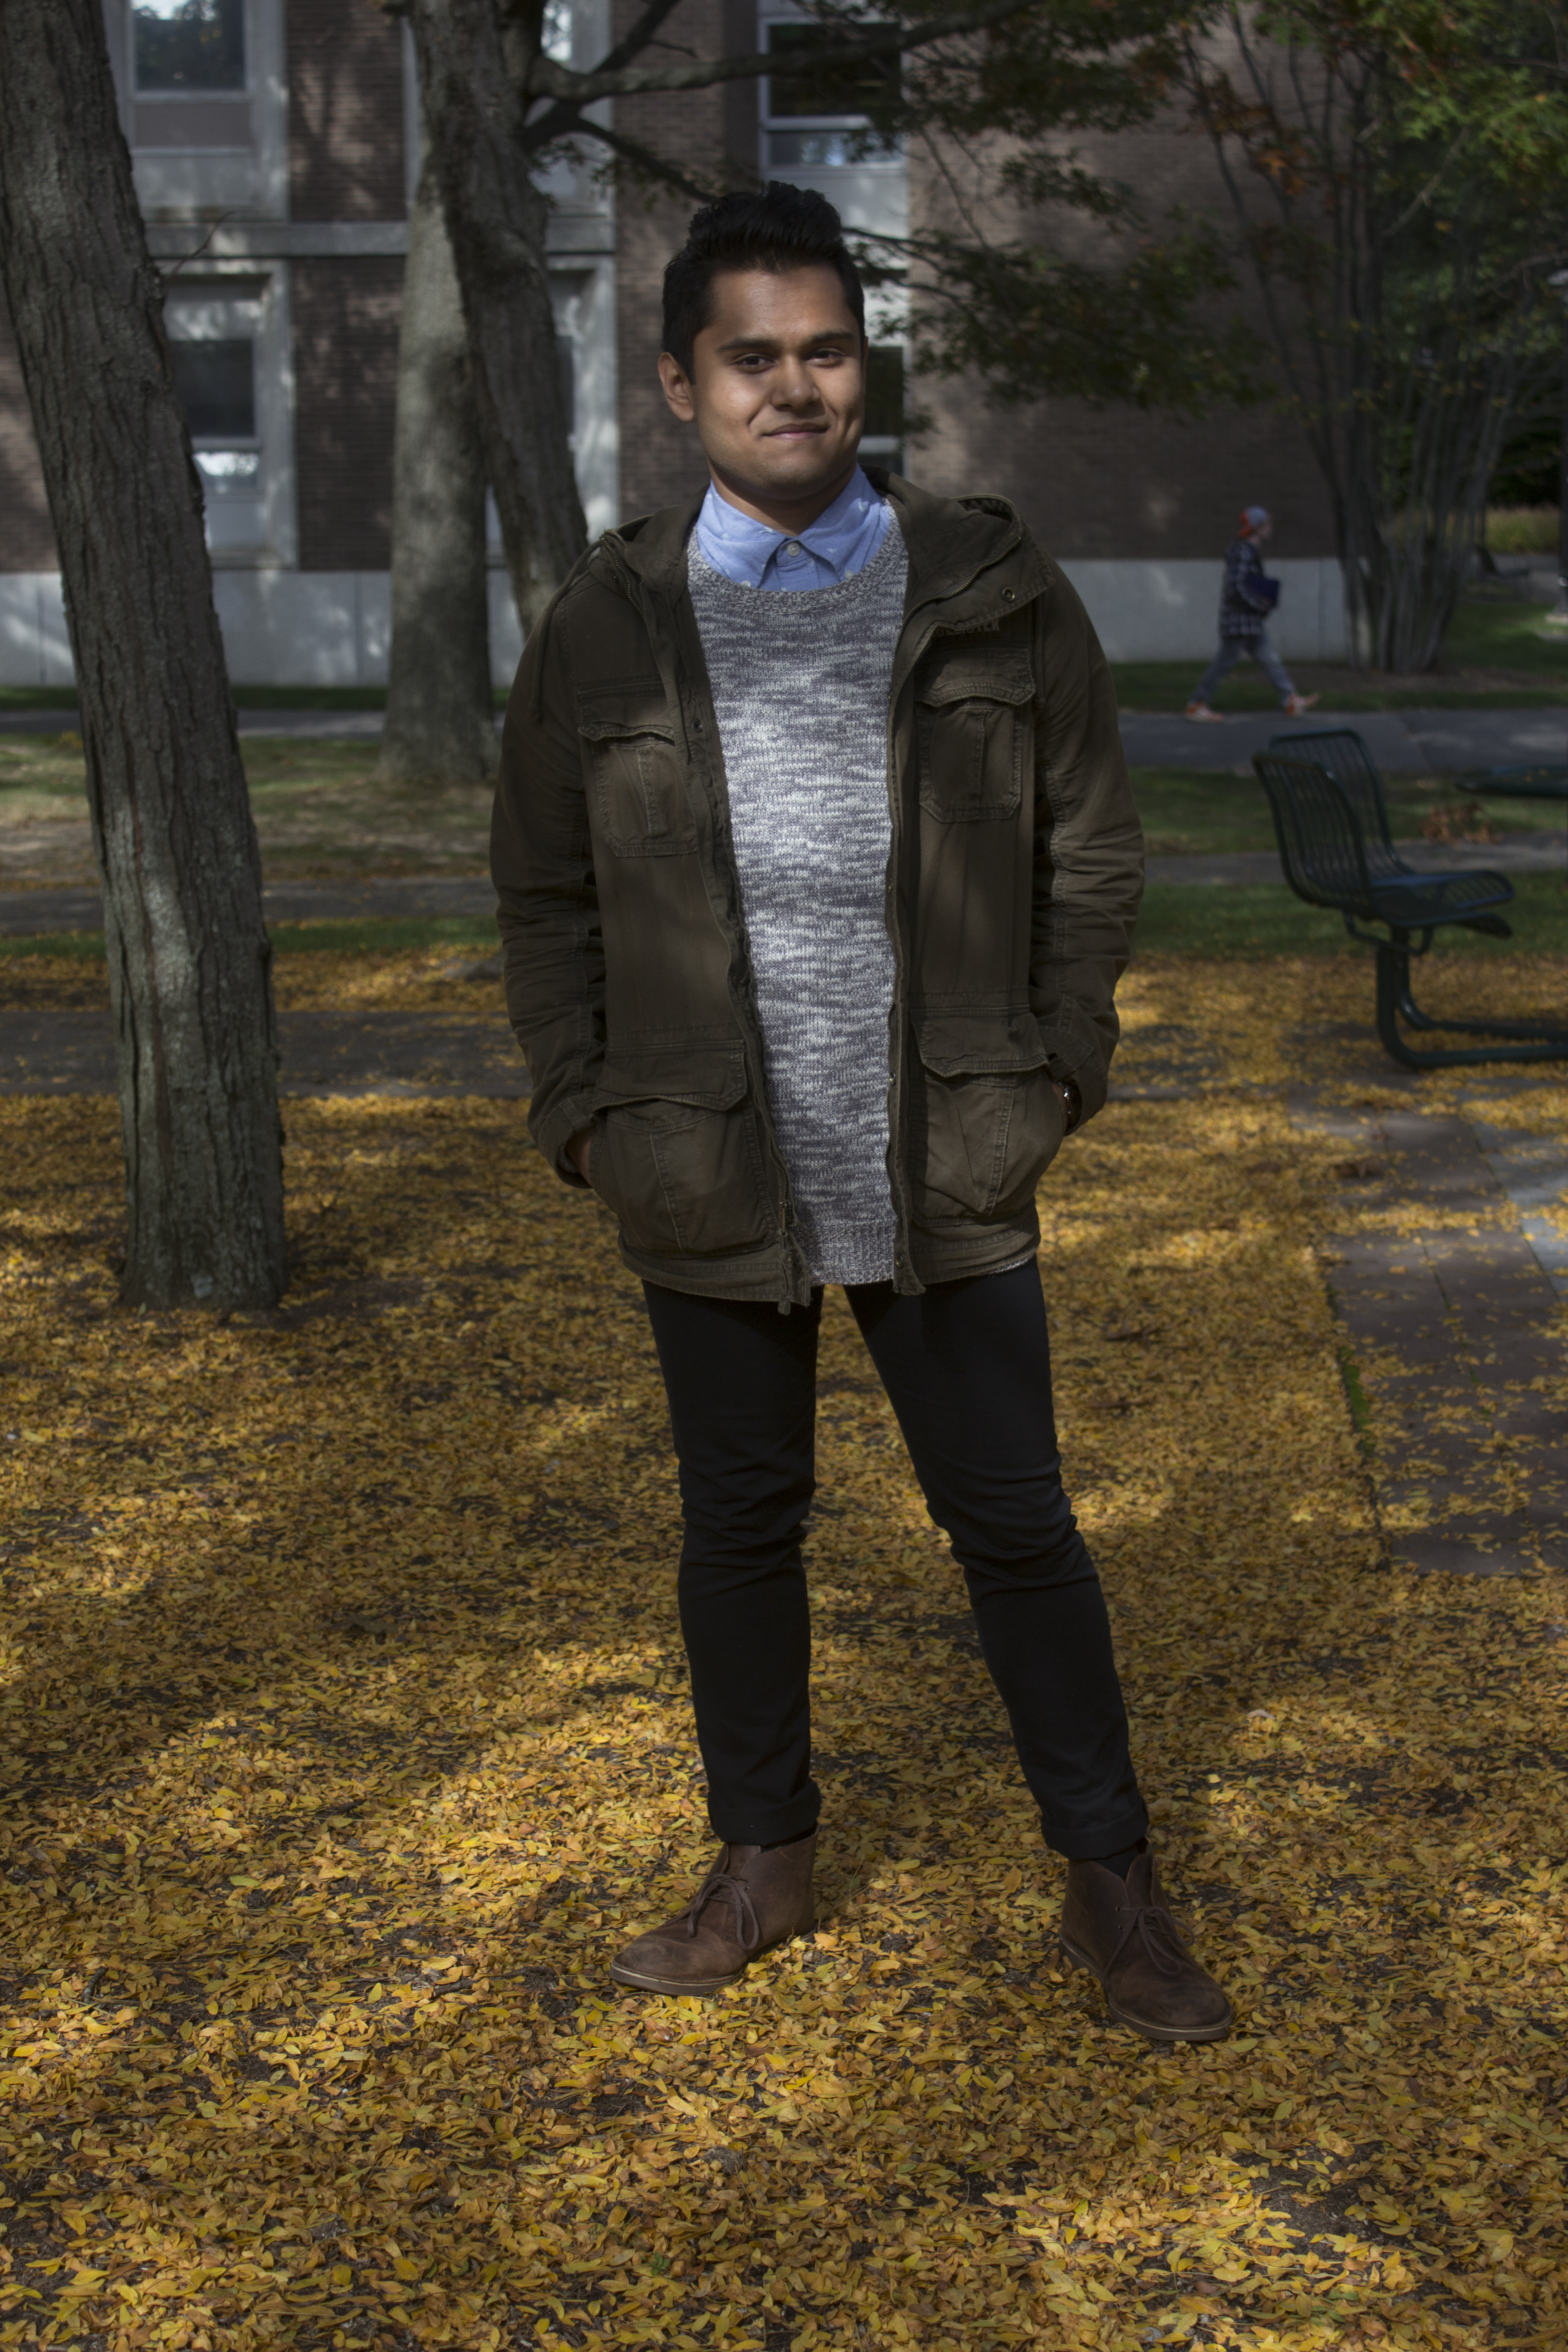 """Rafid Inam, freshman Biology major, poses for a photo on Monday, Oct. 20, 2014. """"I express my thoughts through fashion,"""